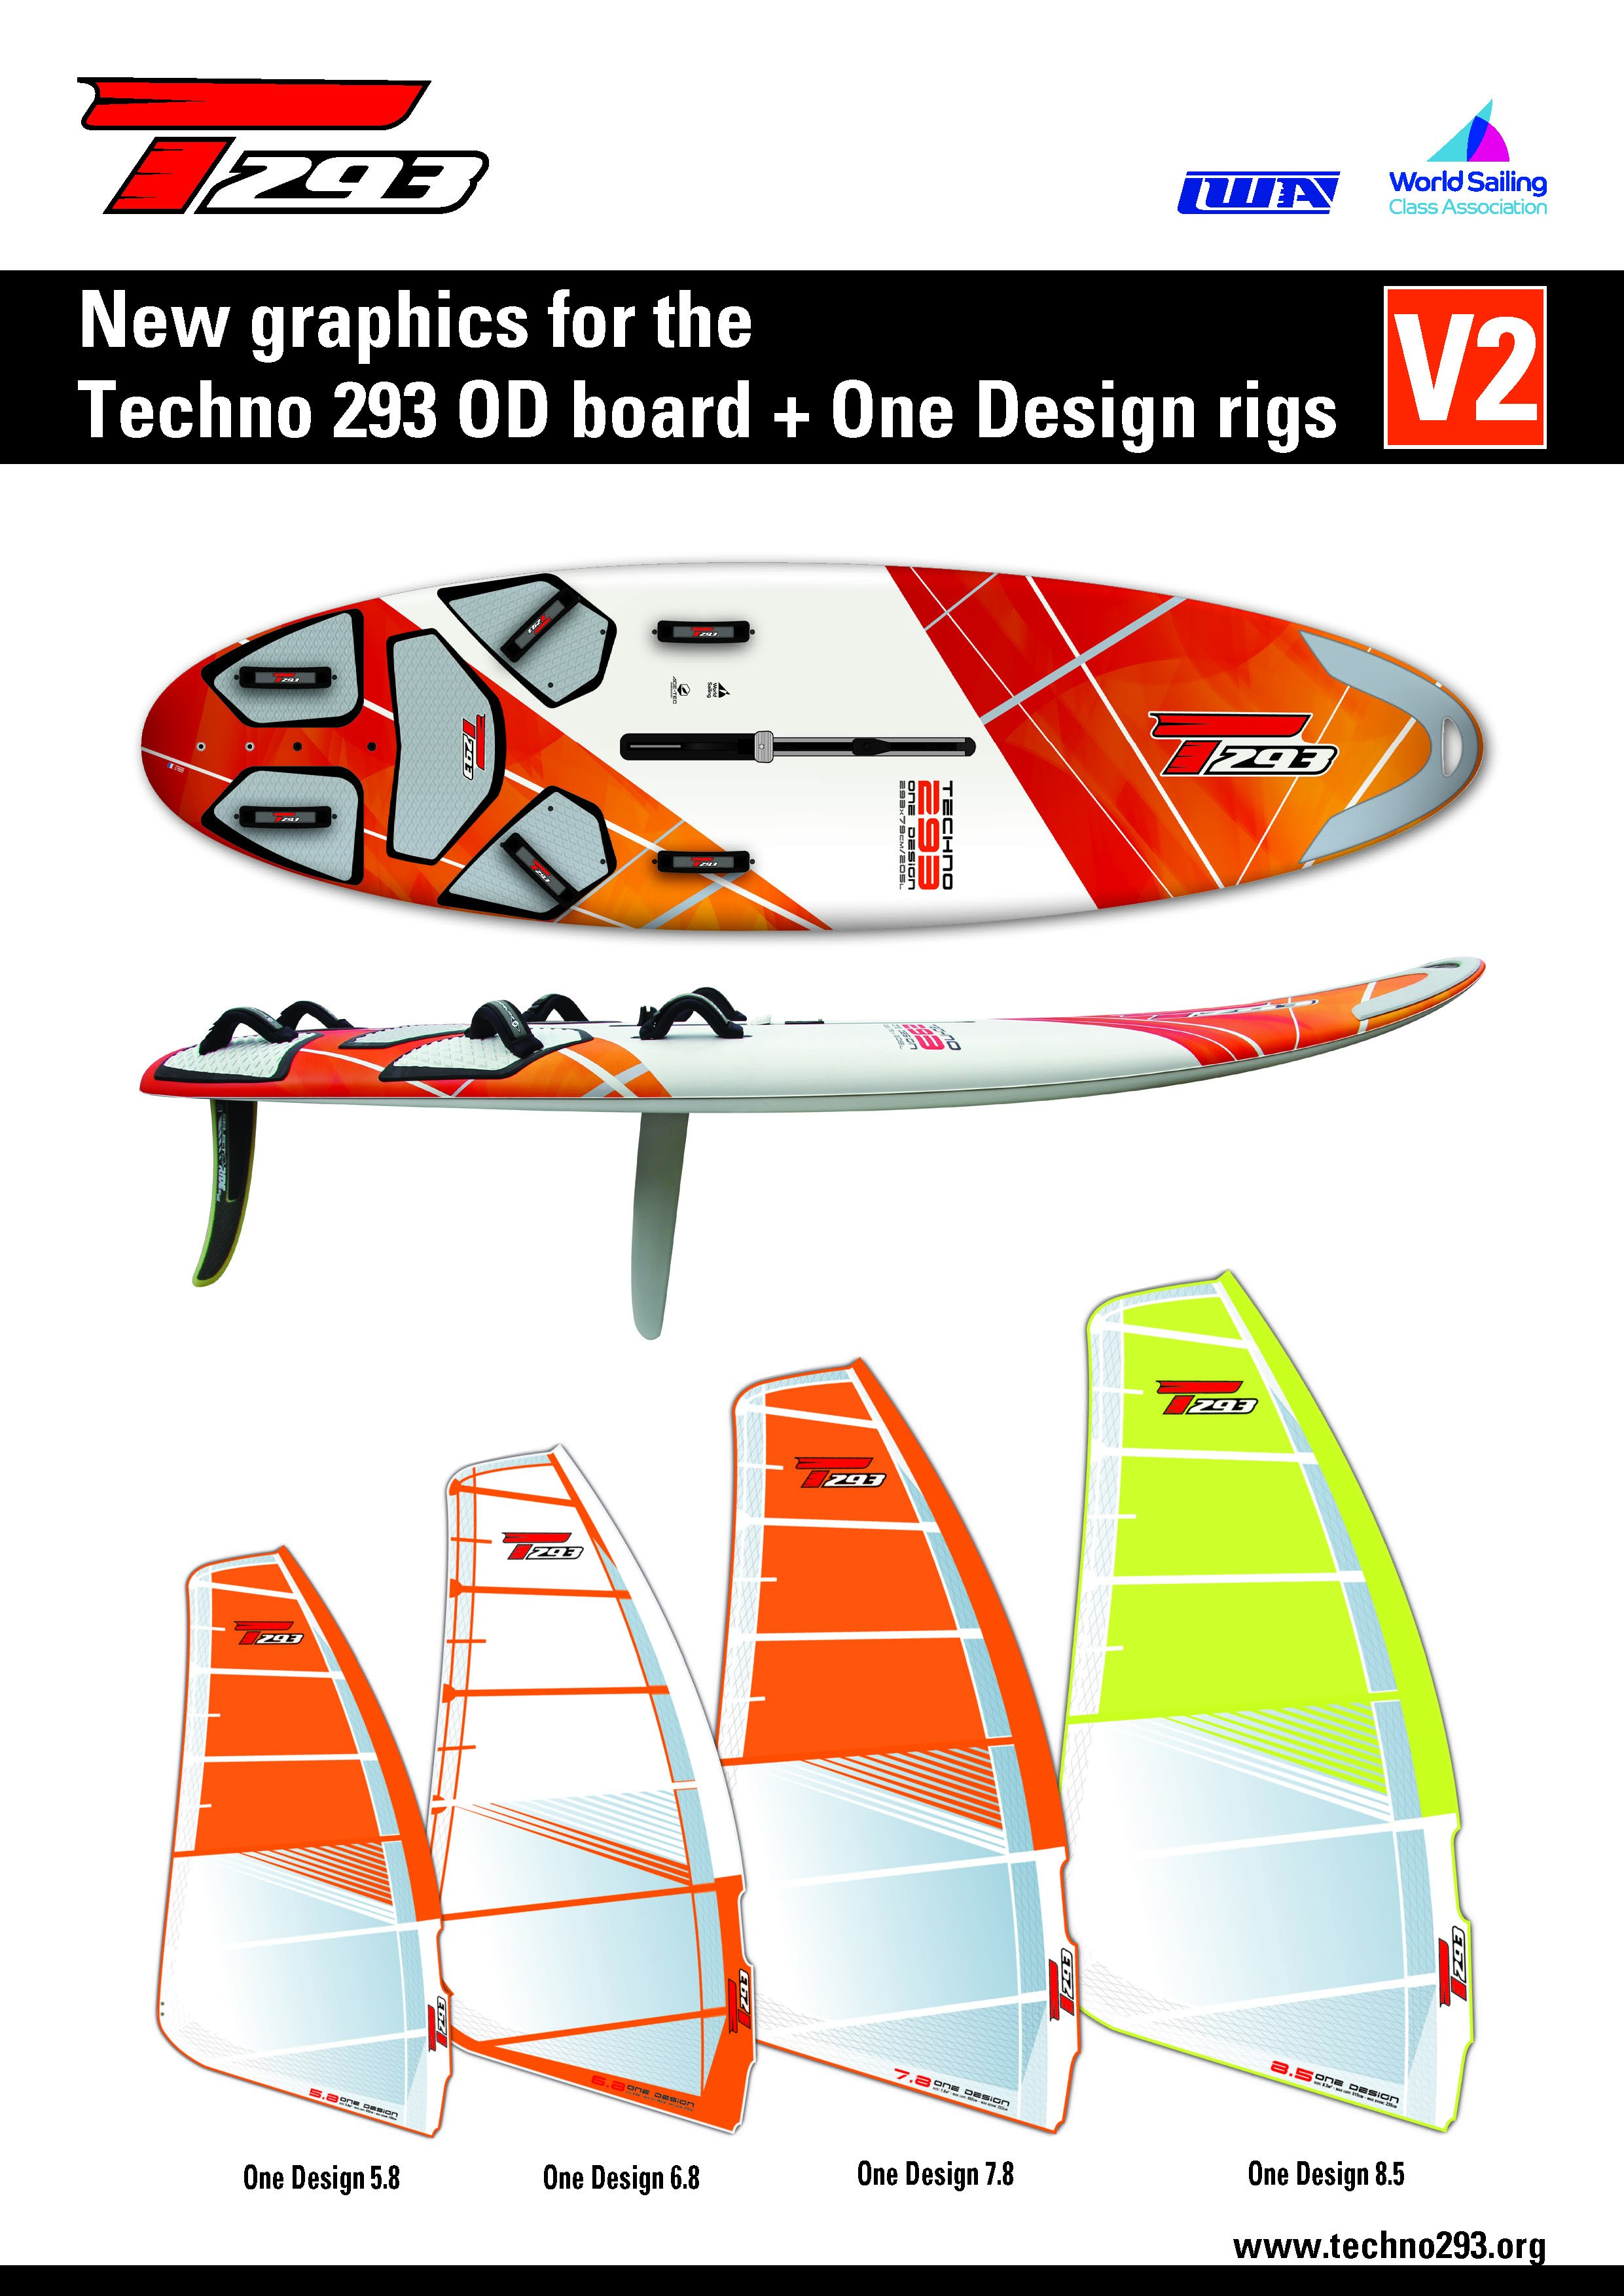 Bic Sport  Techno 293 One Design  Sailaway ile Türkiye'de